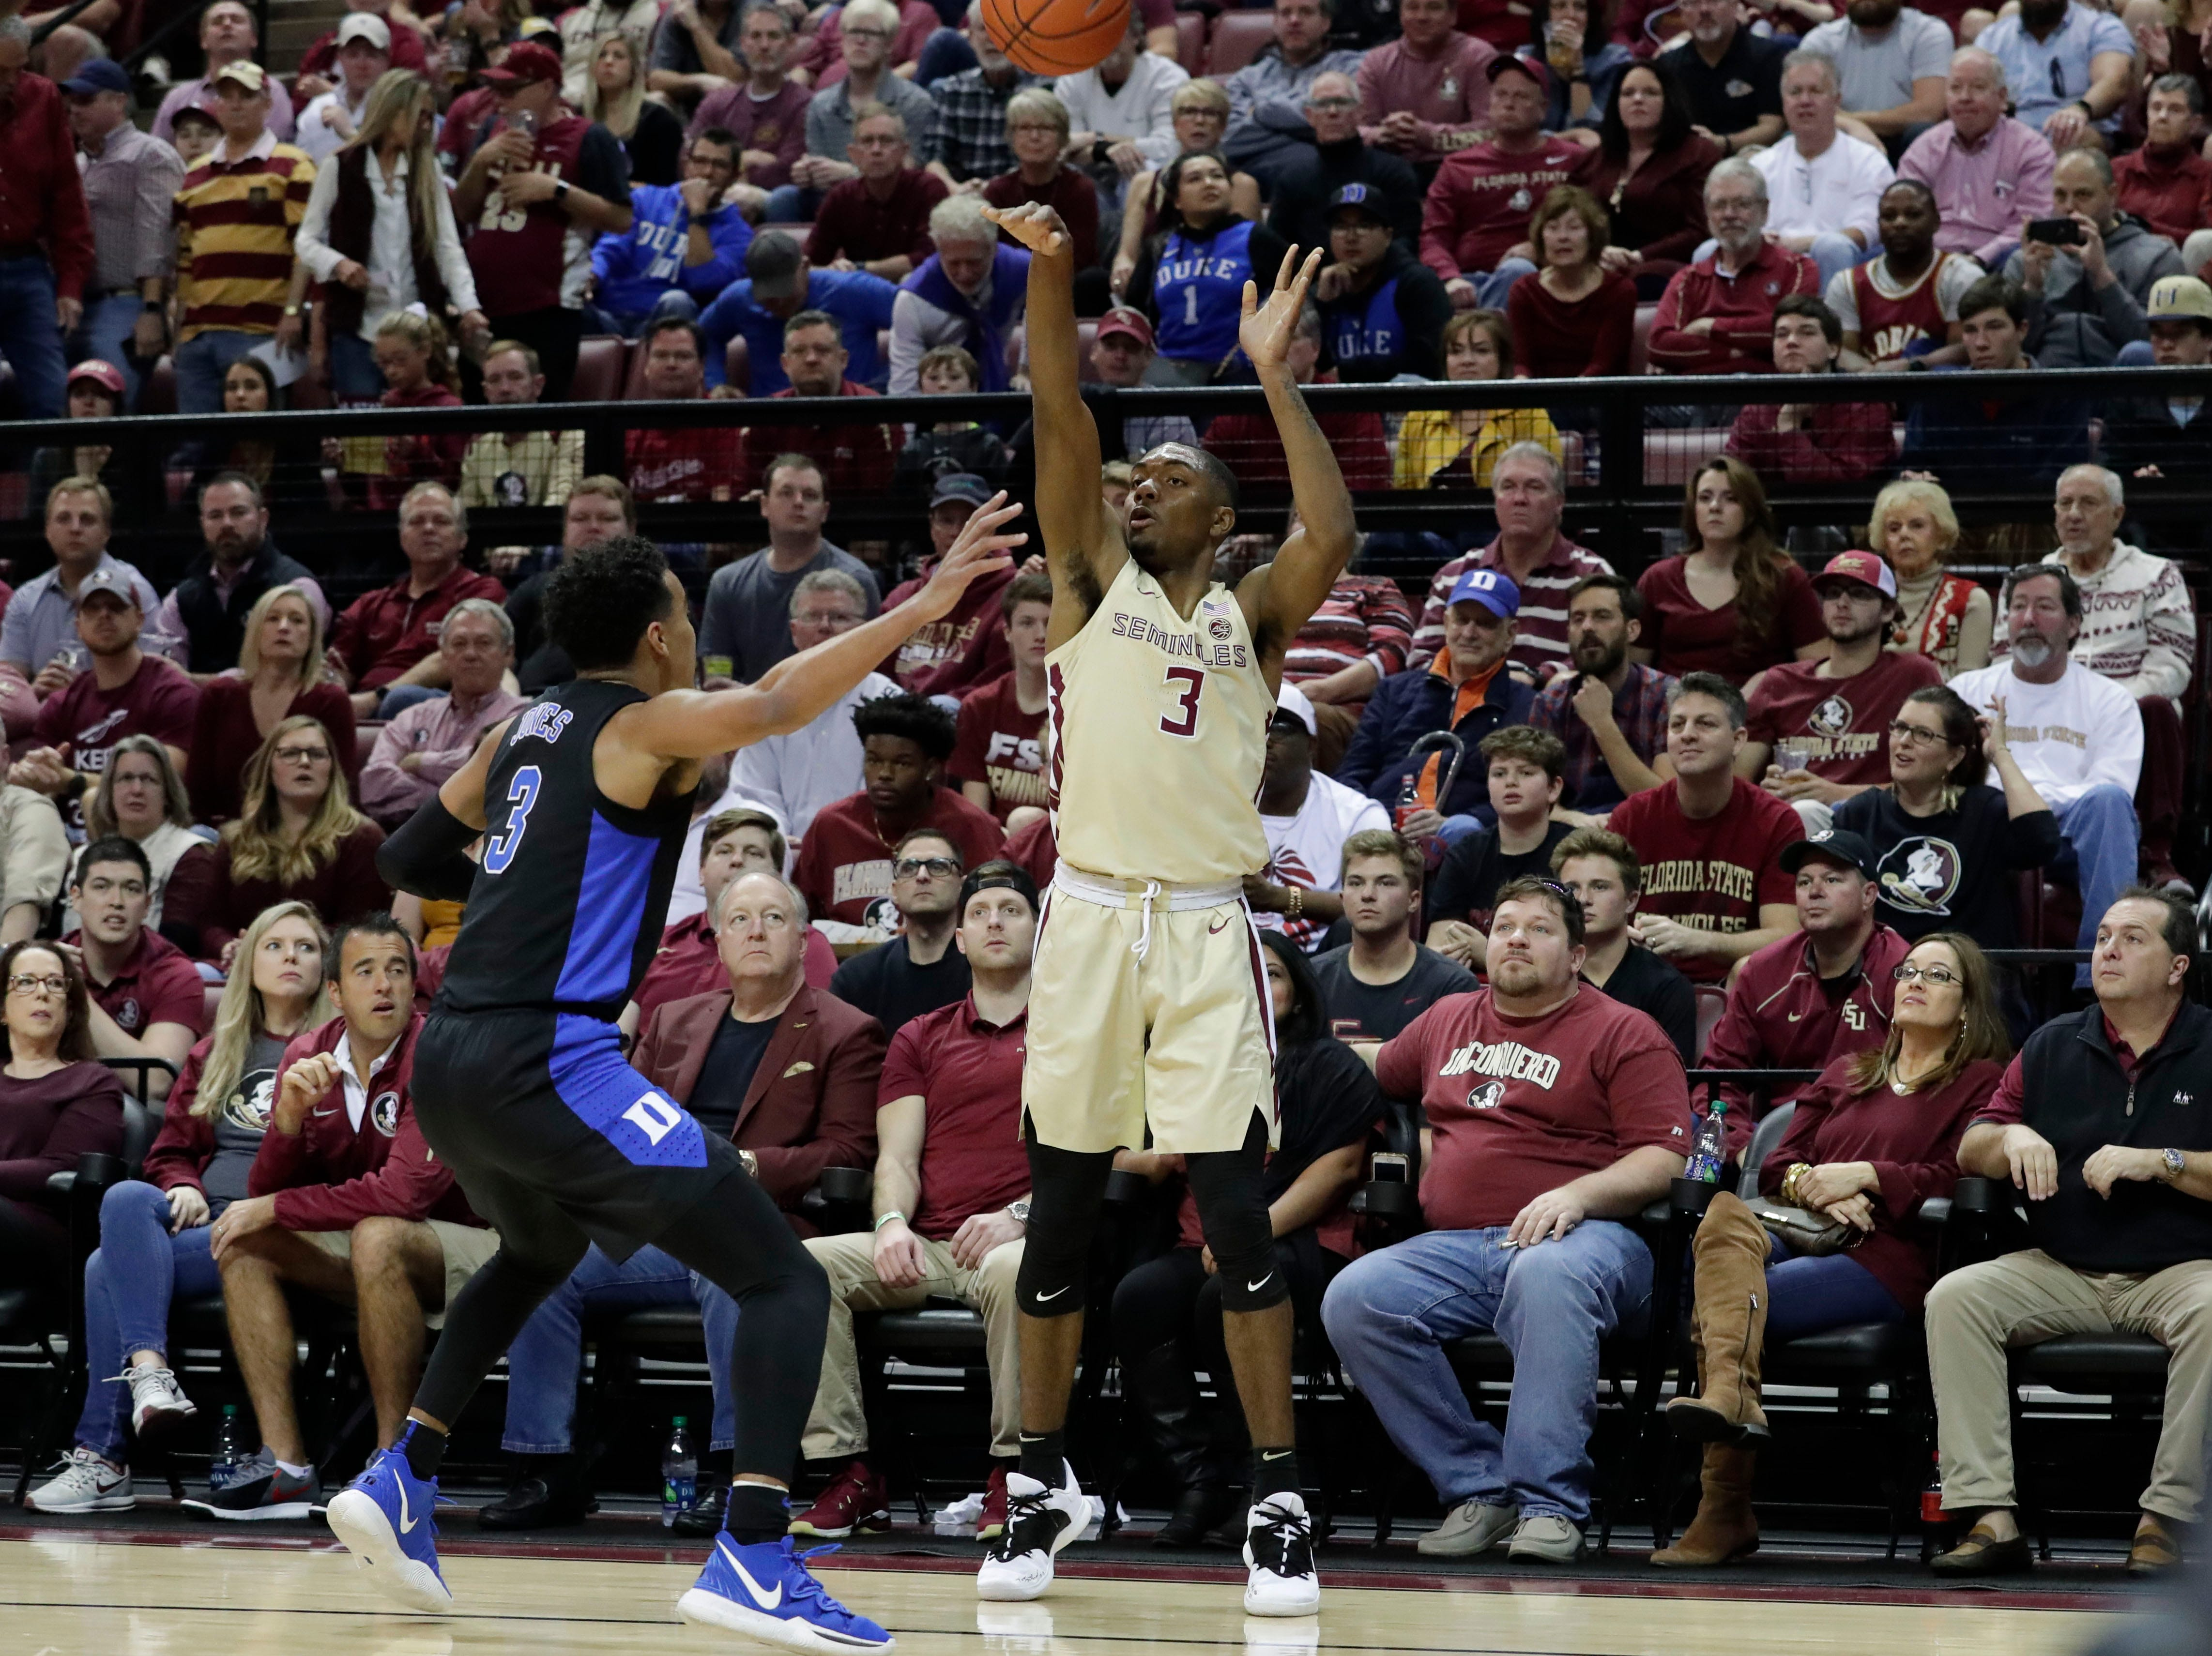 Florida State Seminoles guard Trent Forrest (3) shoots for three with Duke Blue Devils guard Tre Jones (3) trying to block the shot. Ranked 13 in the ACC, the Florida State Seminoles host the number 1 team, the Duke Blue Devils, at the Tucker Civic Center, Saturday, Jan. 12, 2019.